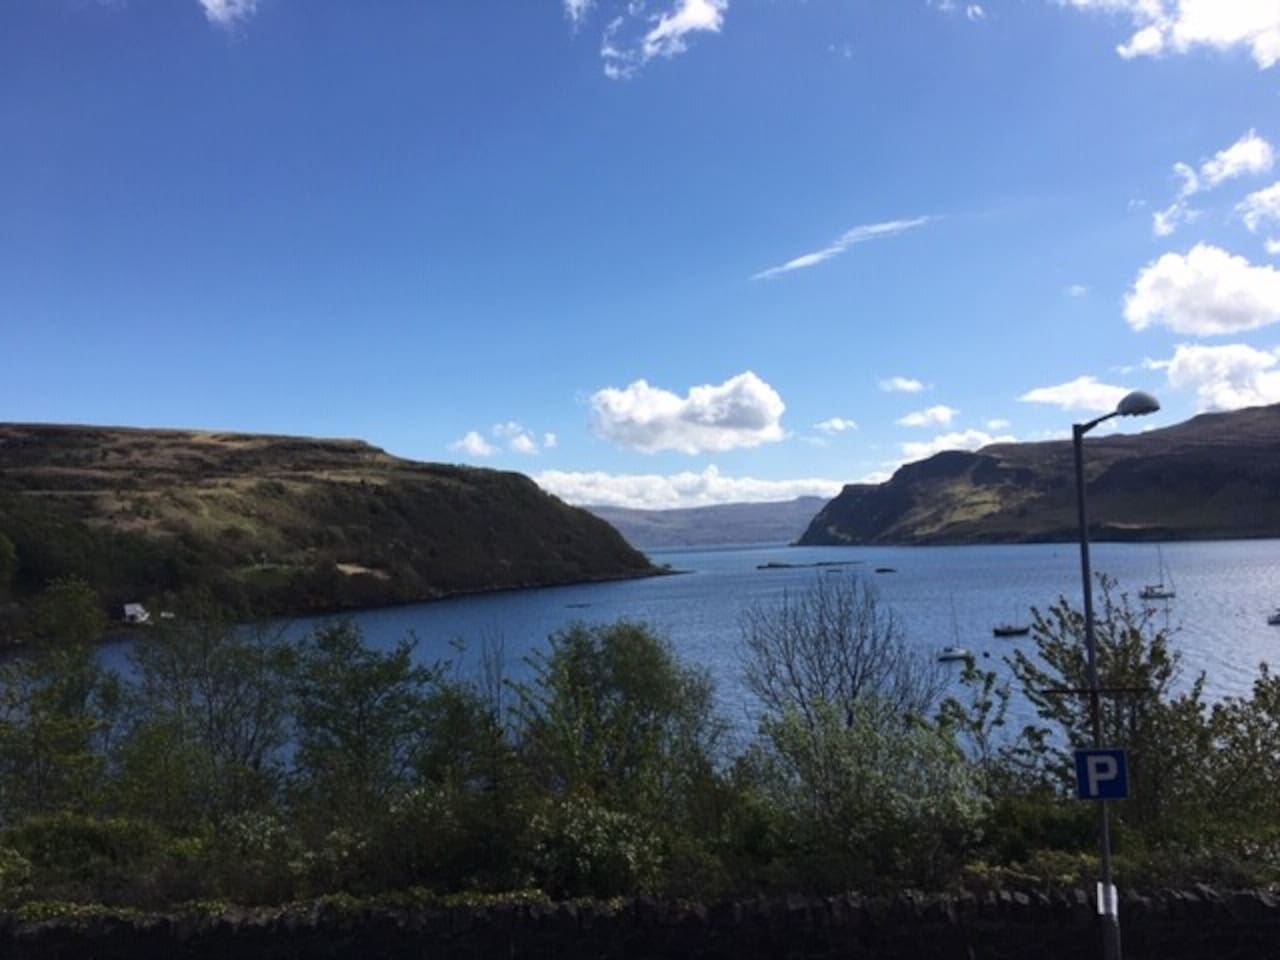 Beautiful views from the house overlooking Ben Tianavaig, The Black Rock and Portree Bay.